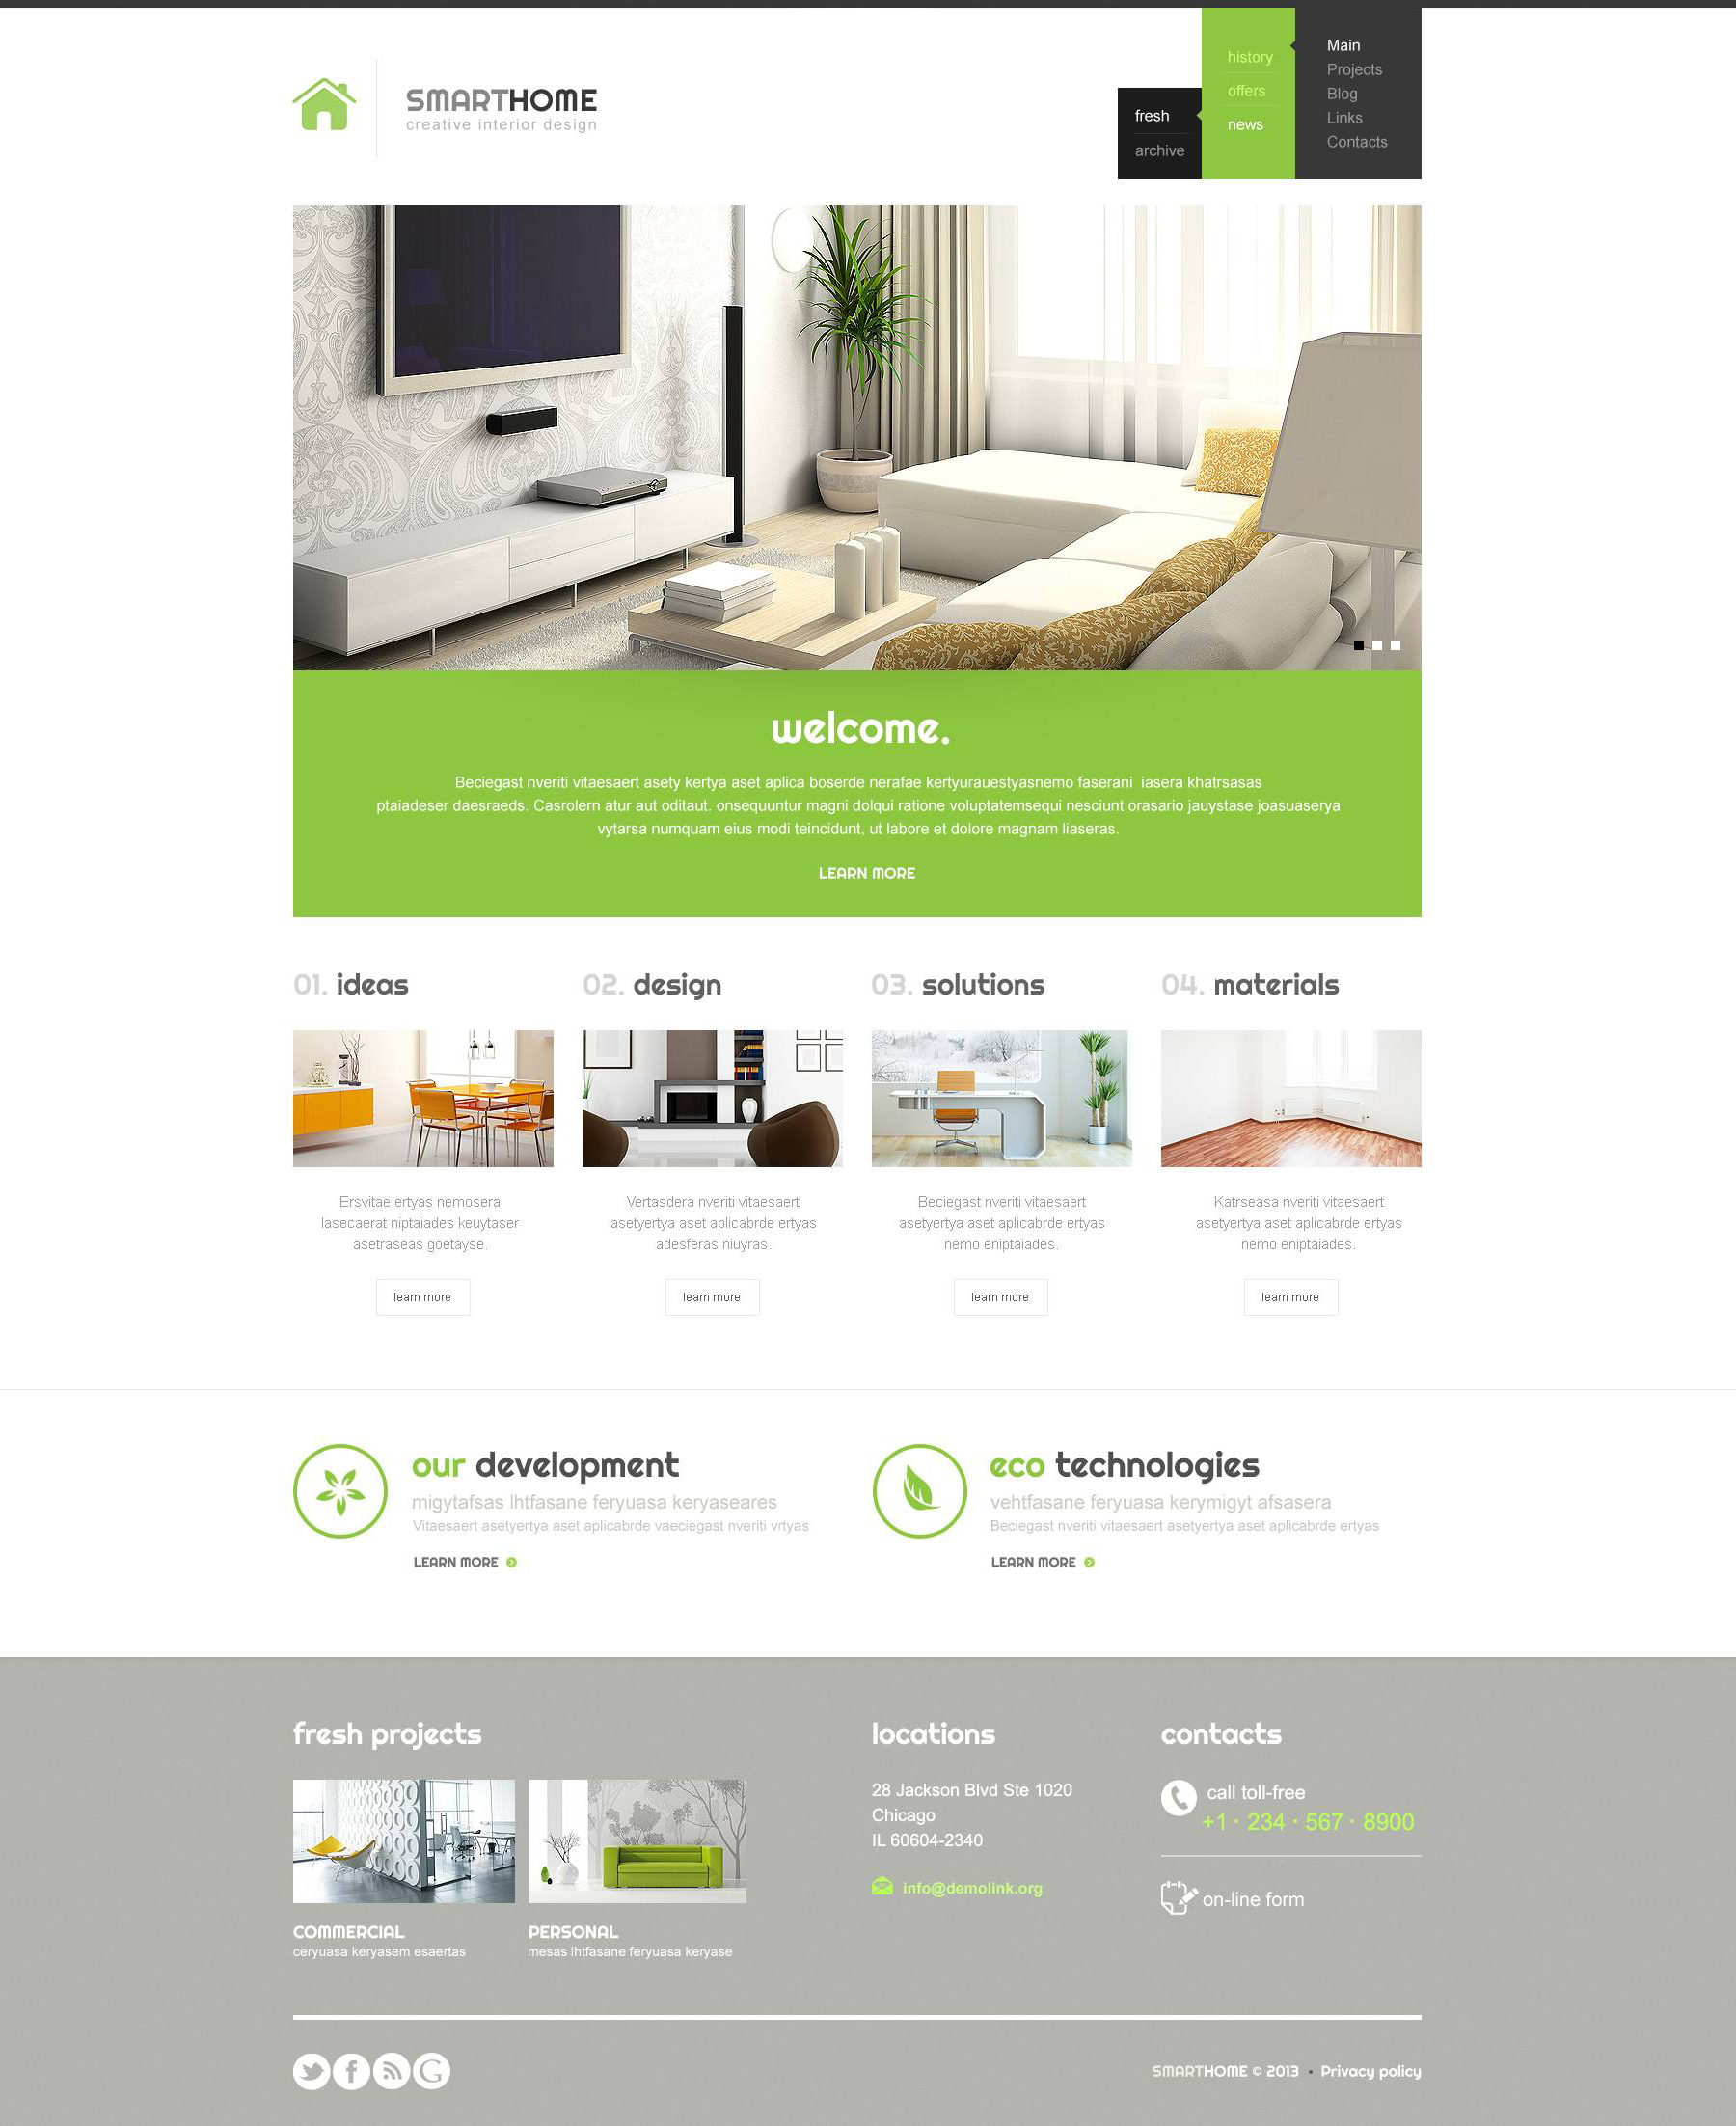 Telltale Signs That You Need a Professional Web Design Facelift